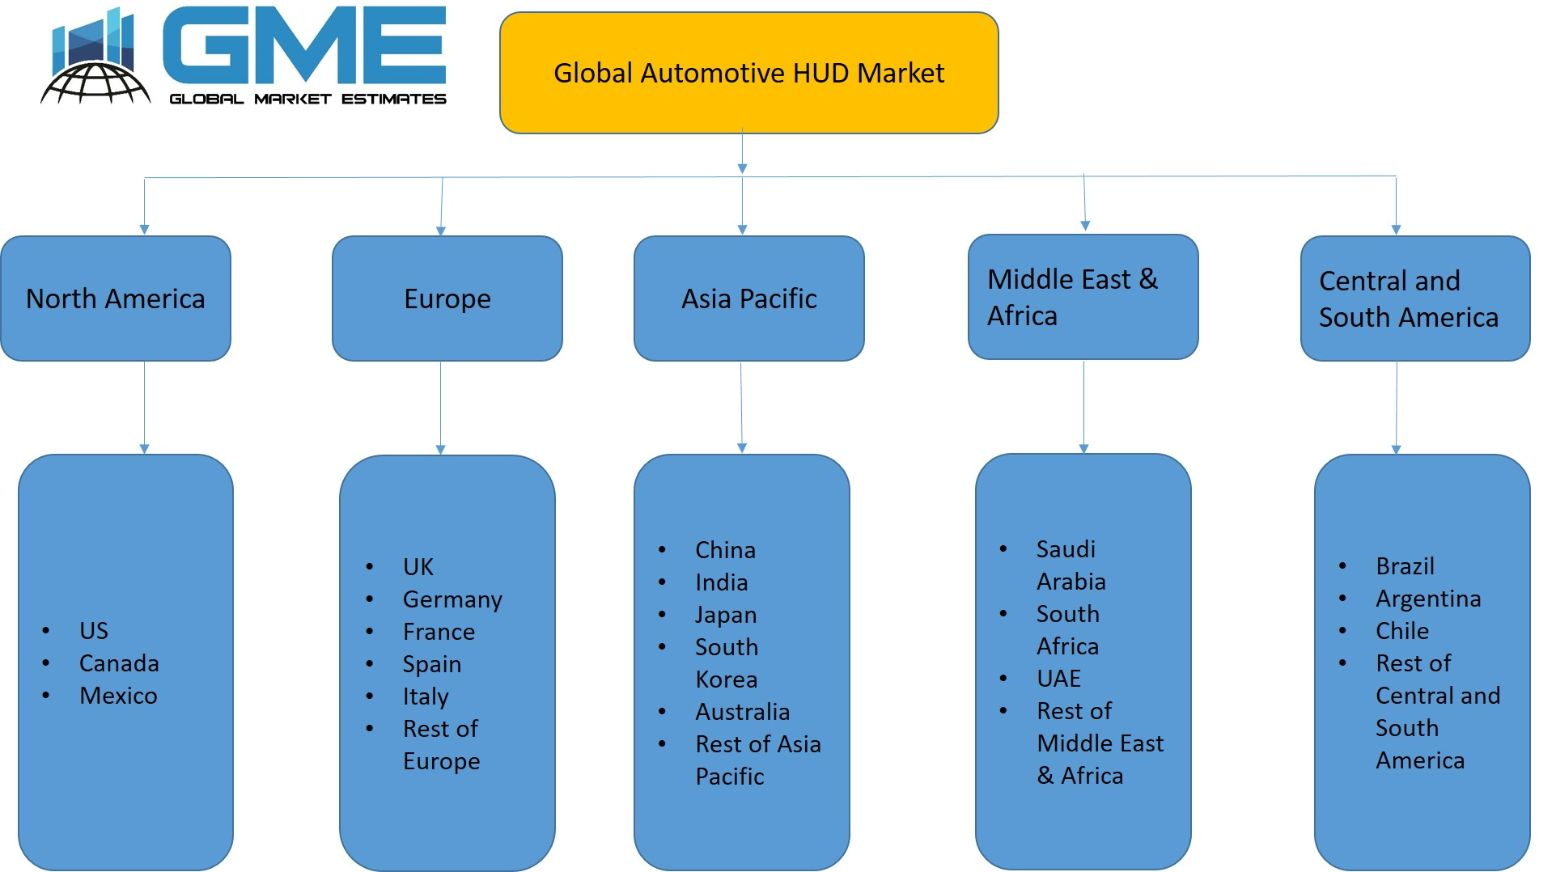 Automotive HUD Market - Regional Analysis